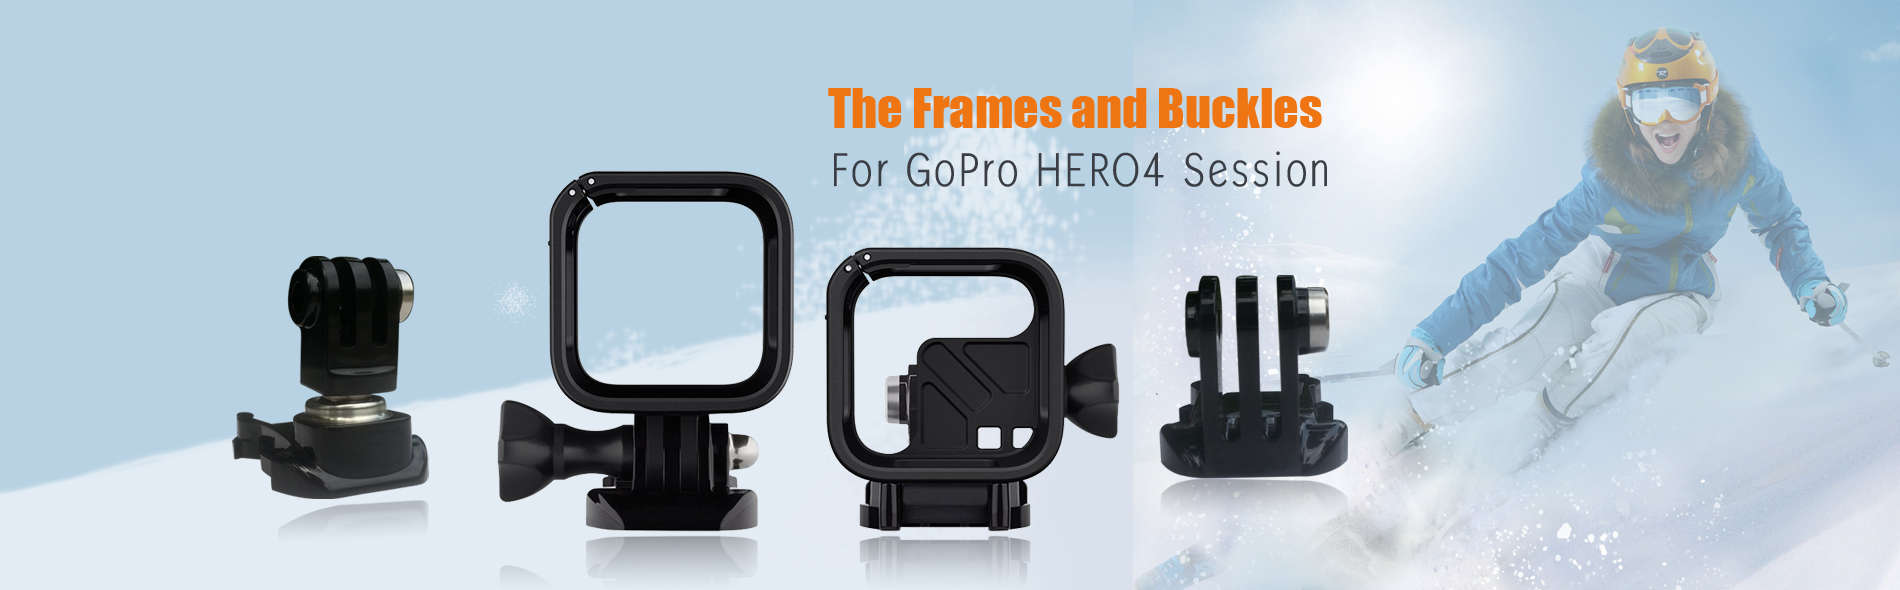 Frame-and-Buckles-for-GoPro-Action-Camera